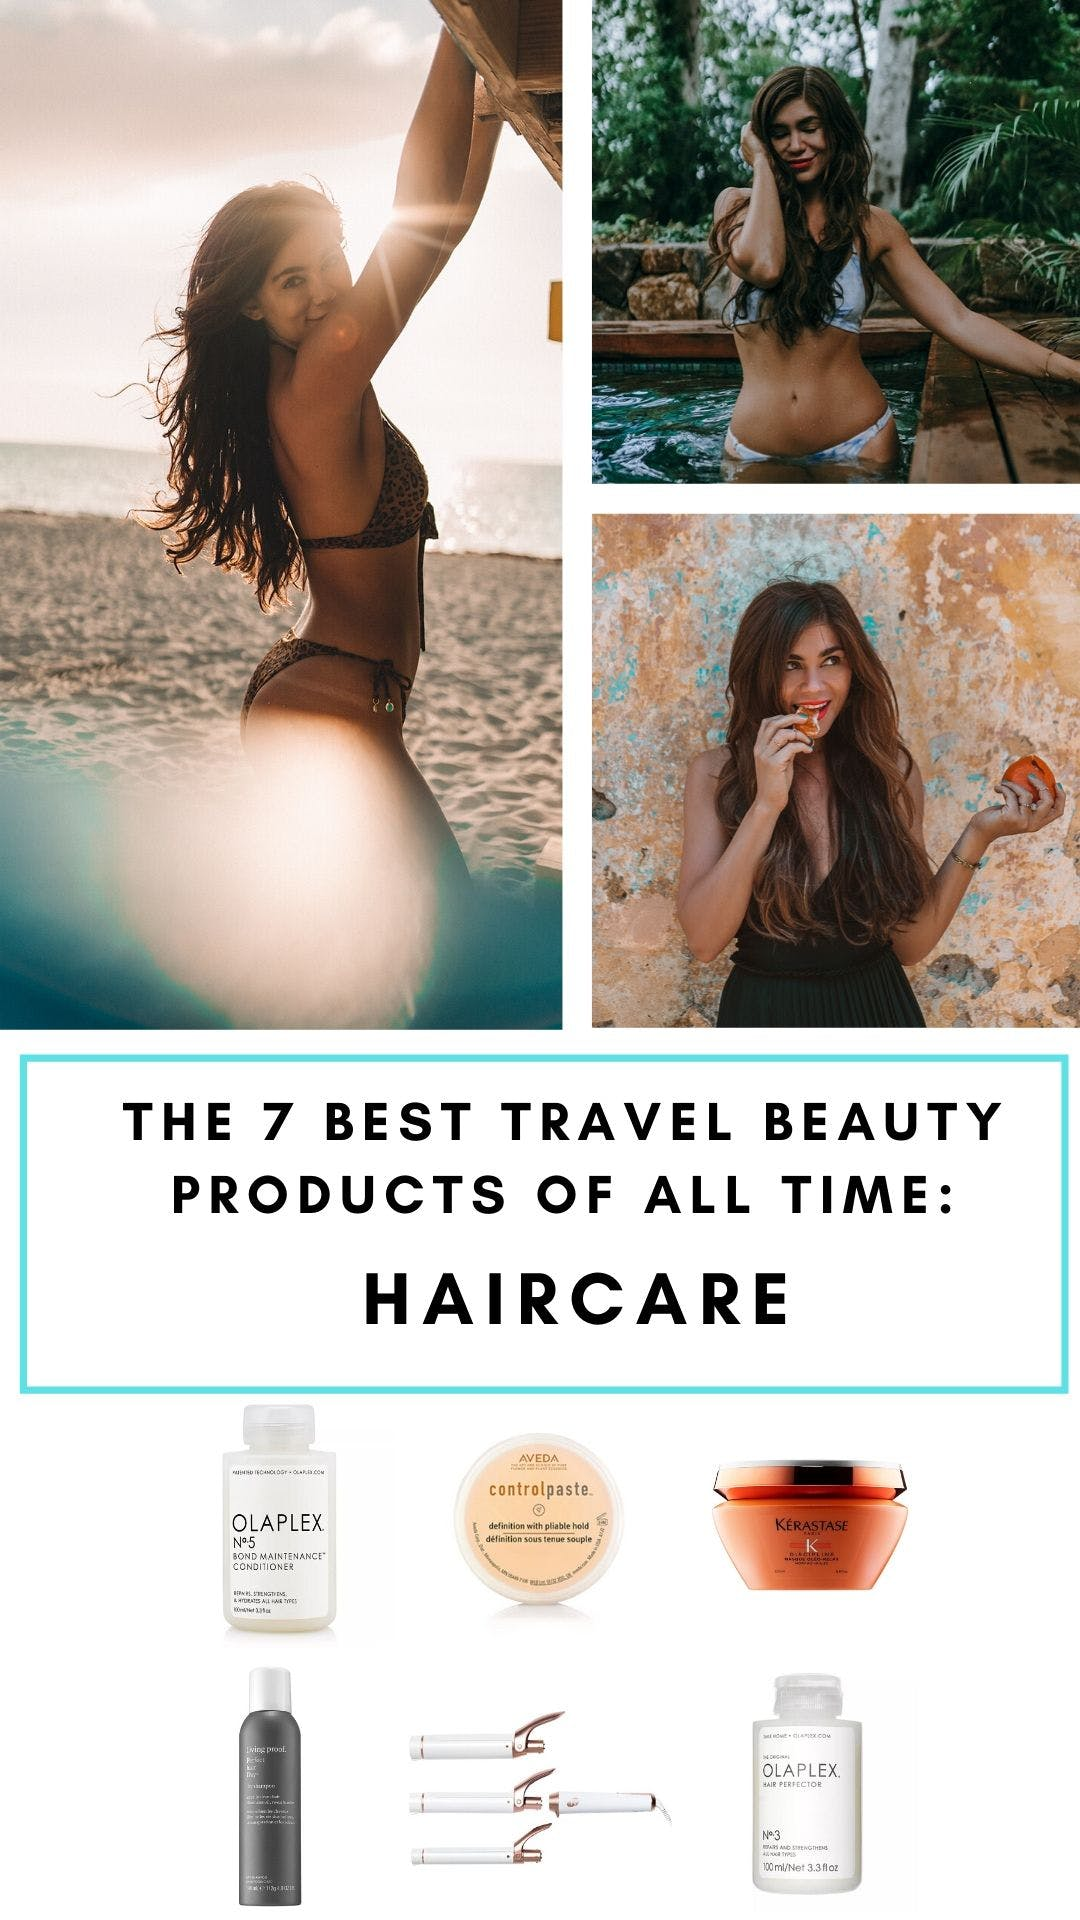 After years of travel, these are the best hair products for travelers to keep your hair healthy while traveling. #travel #haircare #hairproducts   hair care products for travel   best hair care products   must have hair care products   top hair care products   hair care products long hair   hair products long hair   best hair products   hair products silky   hair products lush   travel hair products   travel hair tools   travel hair tips   travel hair ideas   travel beauty products